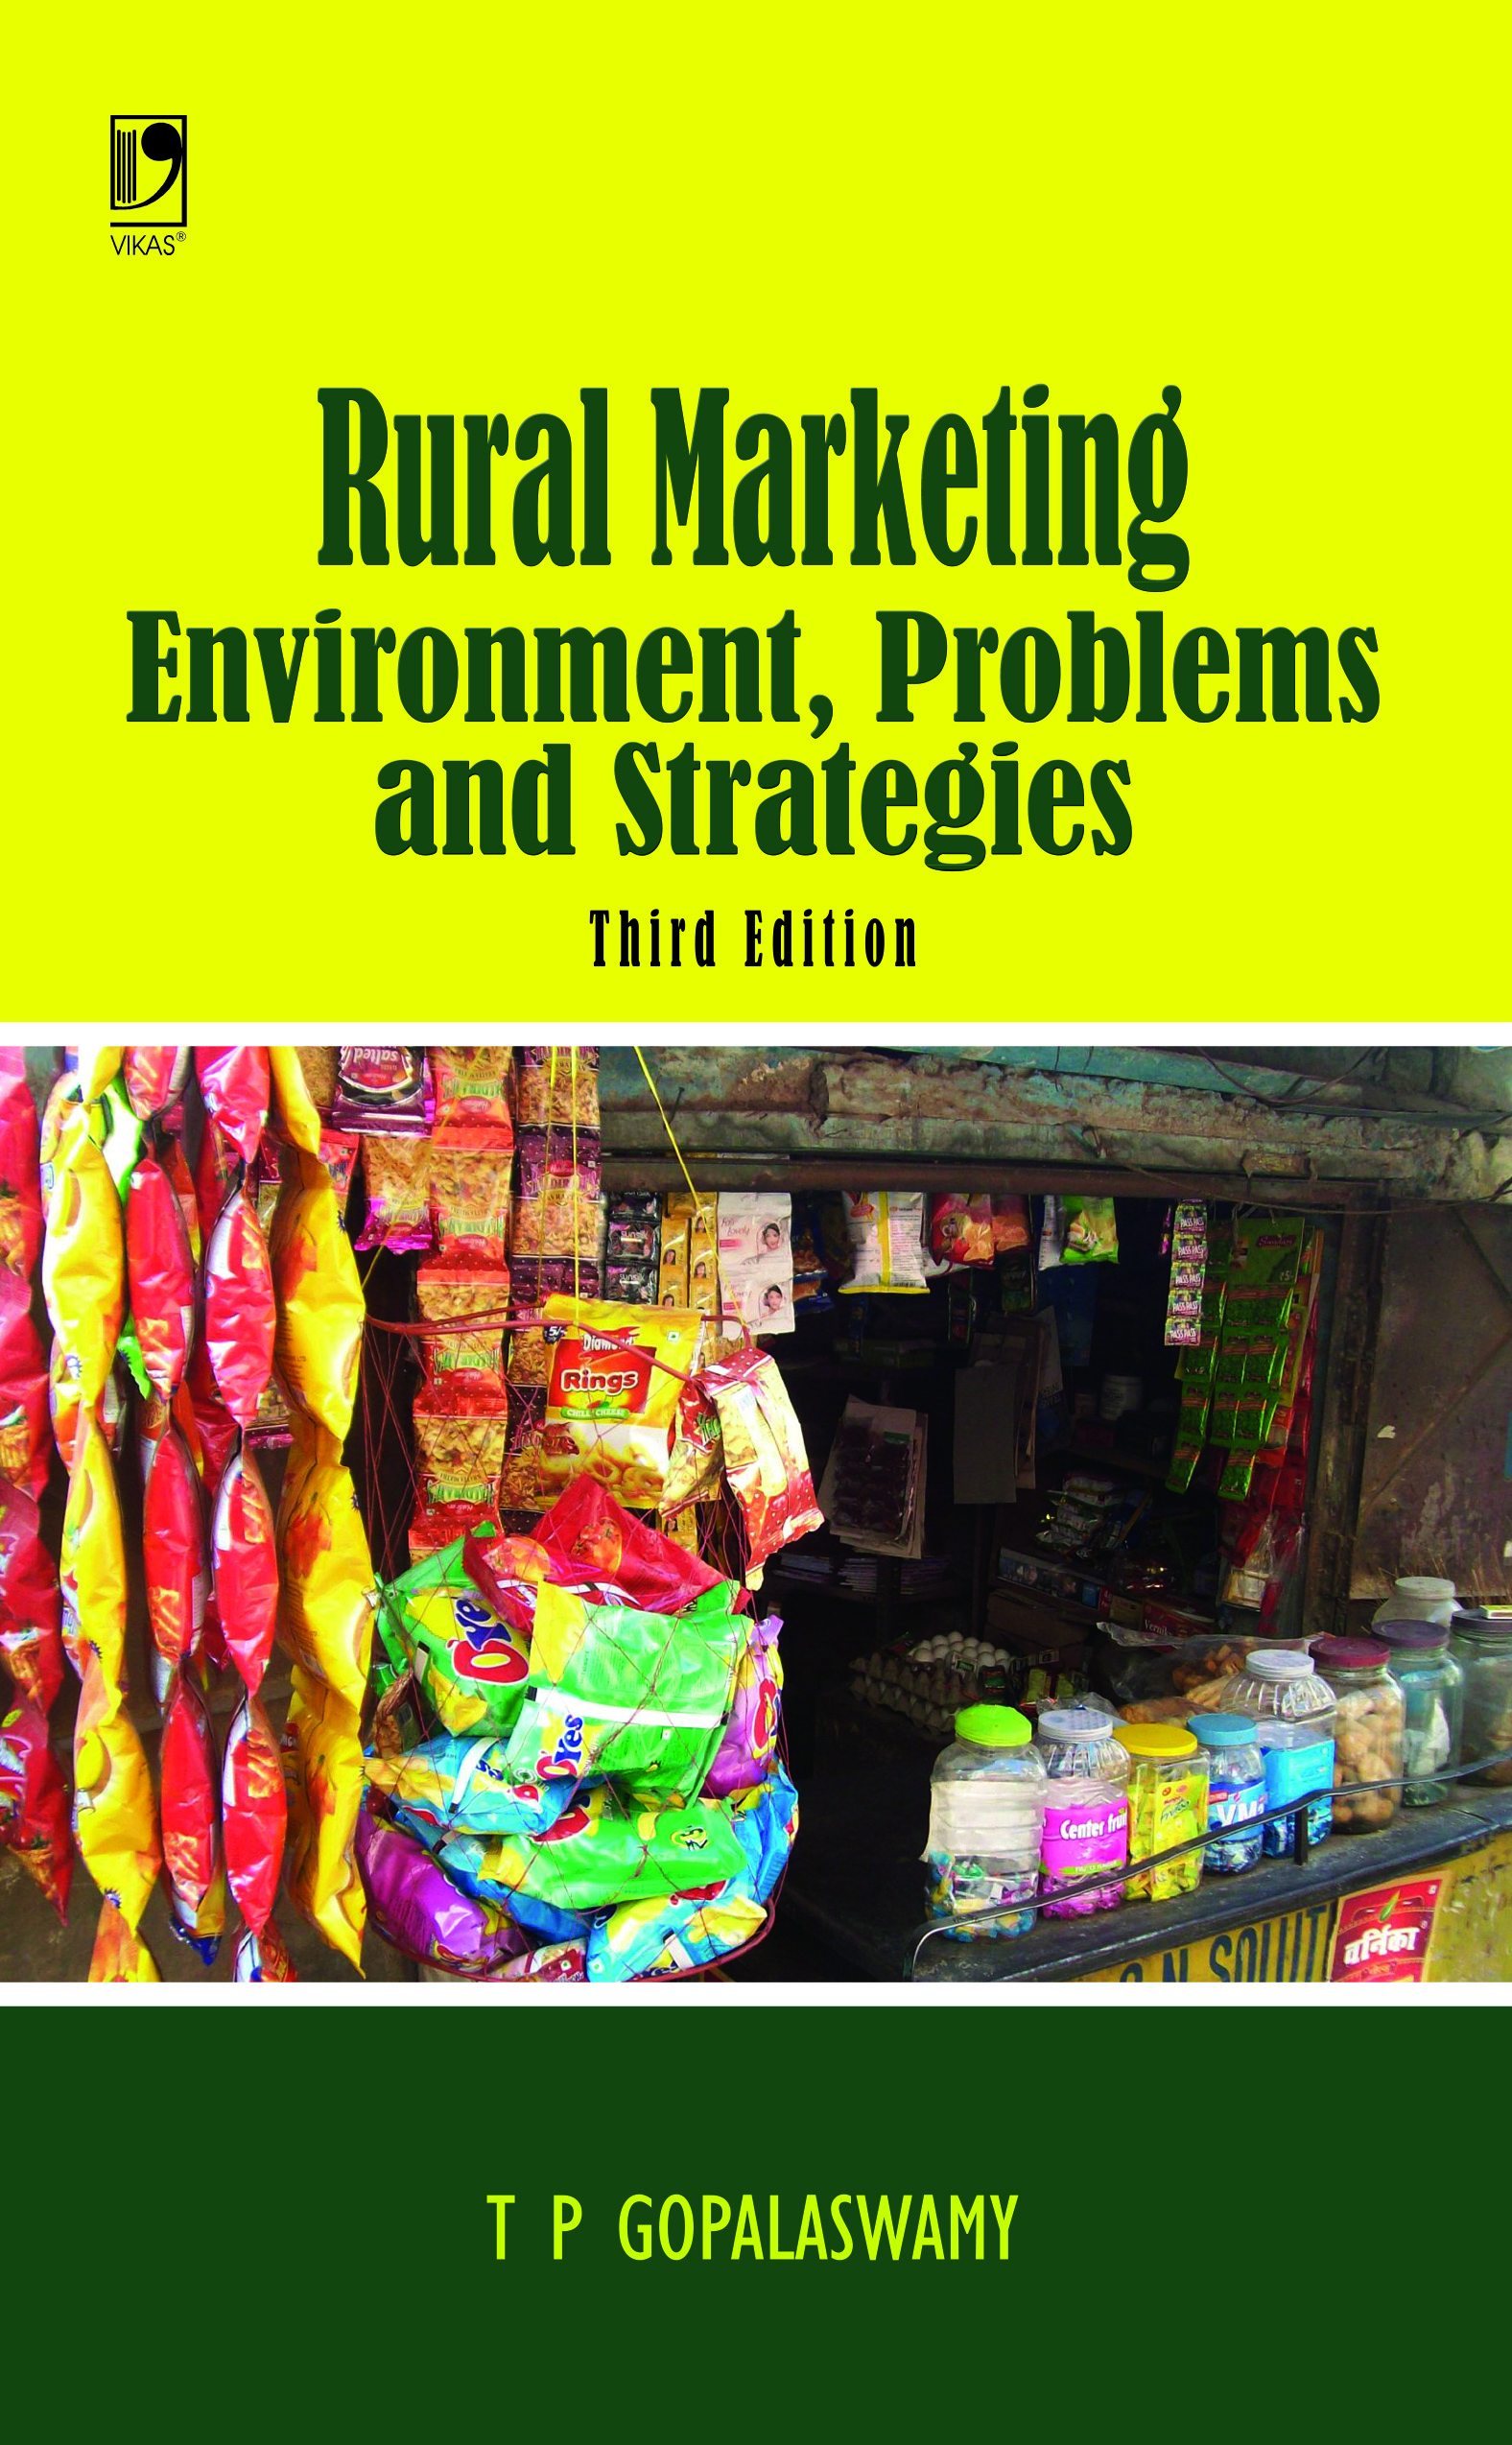 Rural Marketing - Environment, Problems and Strategies, 3/e  by T P Gopalaswamy